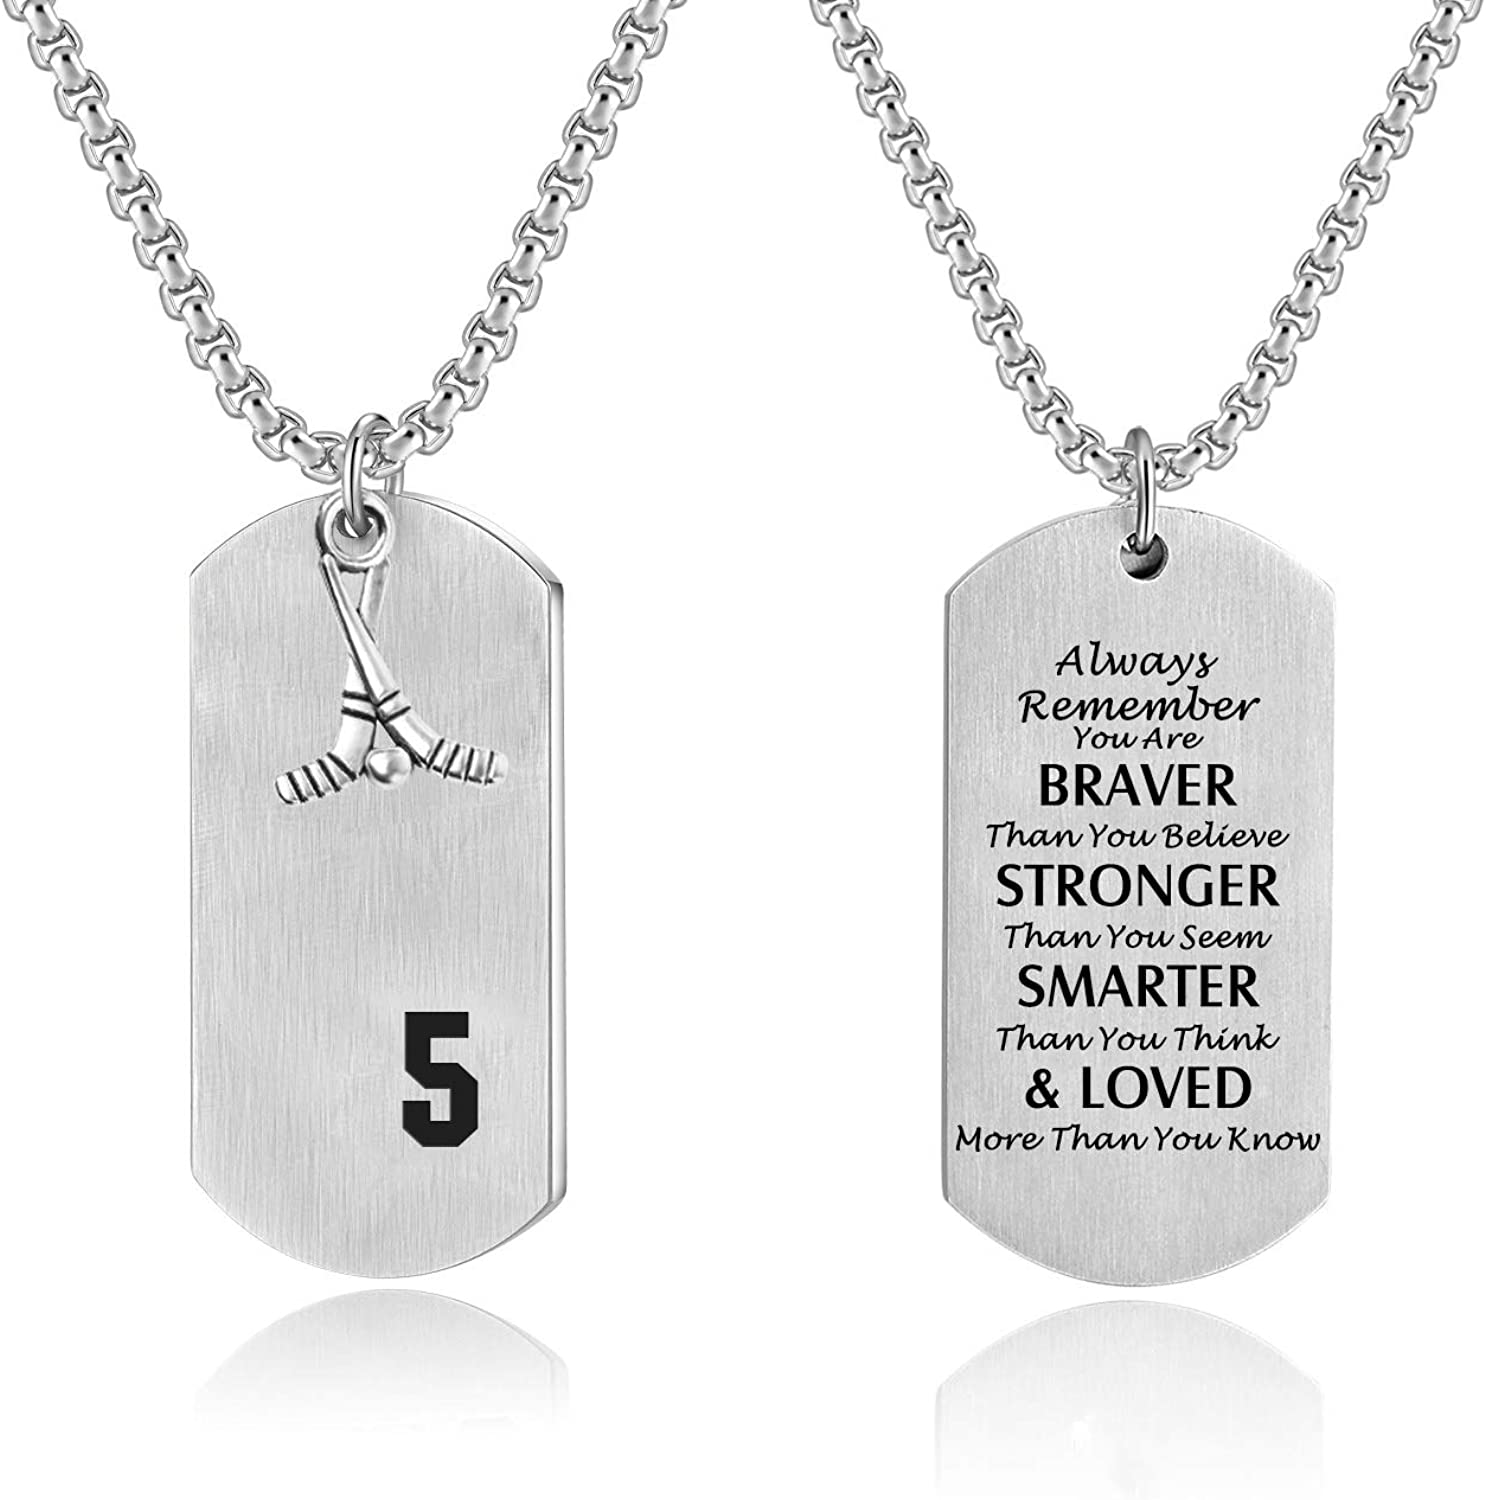 VI.SPORT Stainless Steel Hockey Player Necklace Stainless Steel Dog Tag Pendant Philippians 4:13 I Can Do All Things and You are Braver